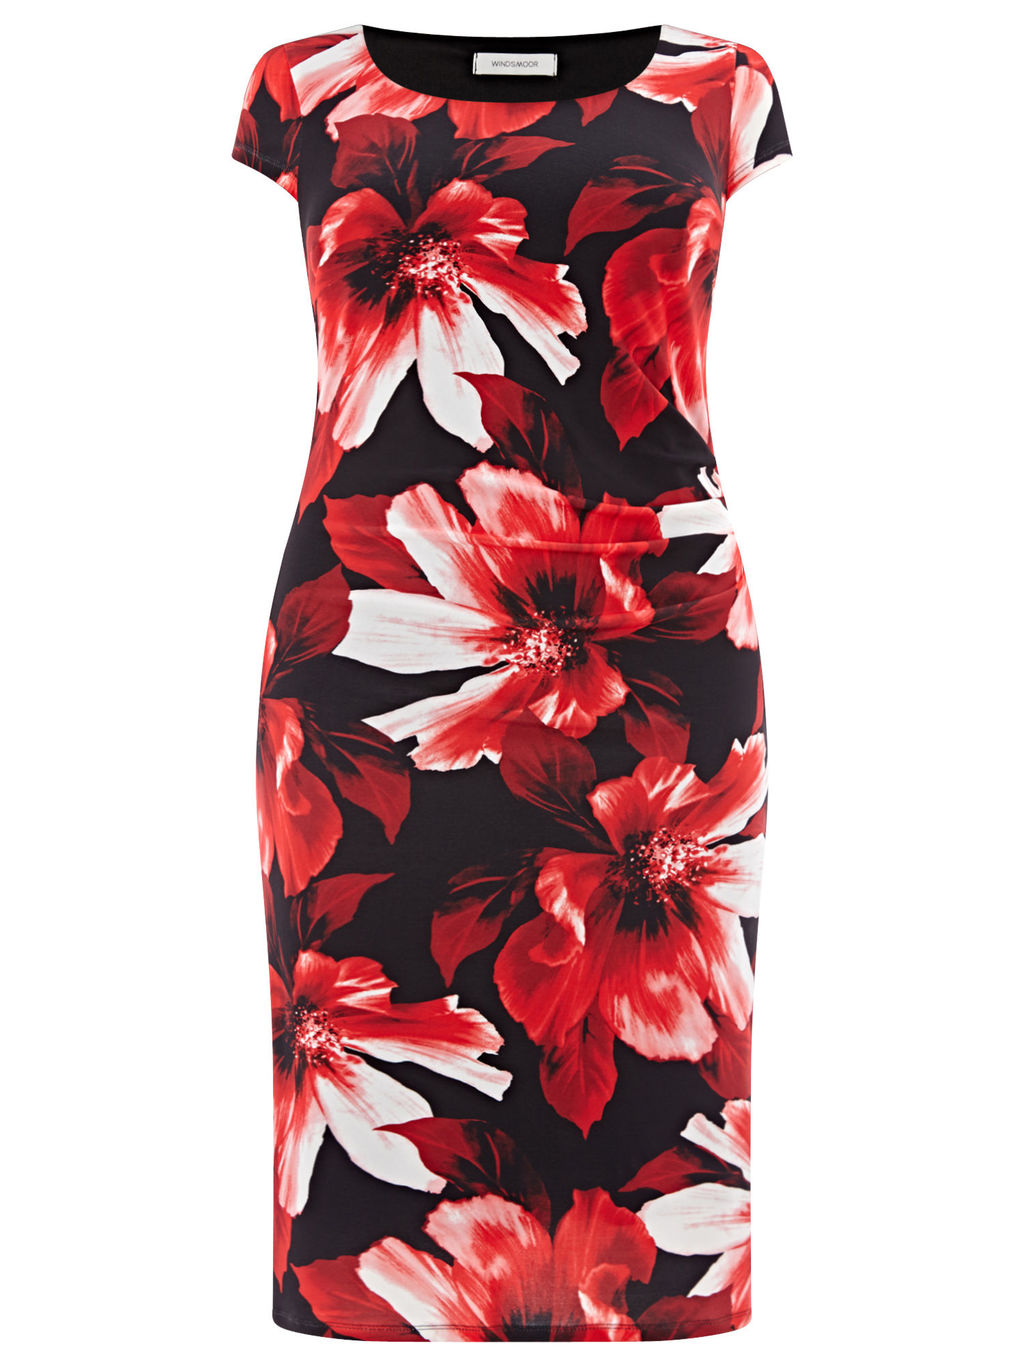 Floral Print Dress, Red/Black - style: shift; neckline: round neck; sleeve style: capped; fit: tailored/fitted; predominant colour: true red; secondary colour: black; length: on the knee; fibres: polyester/polyamide - stretch; occasions: occasion; sleeve length: short sleeve; pattern type: fabric; pattern size: big & busy; pattern: florals; texture group: jersey - stretchy/drapey; season: a/w 2015; wardrobe: event